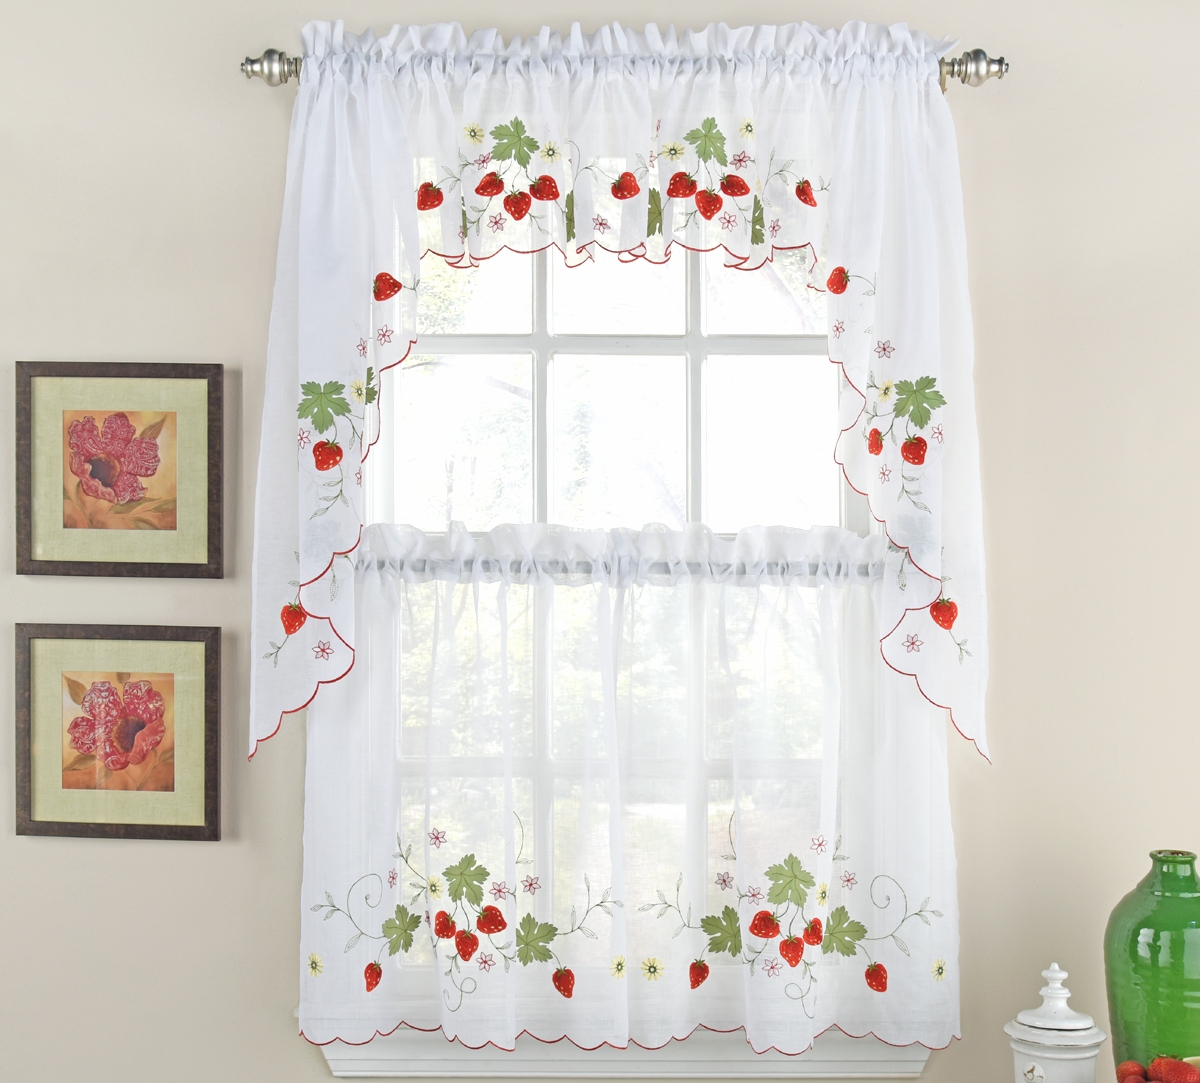 Strawberries Kitchen Curtain Ensemble With Embroidered Floral 5 Piece Kitchen Curtain Sets (View 12 of 20)